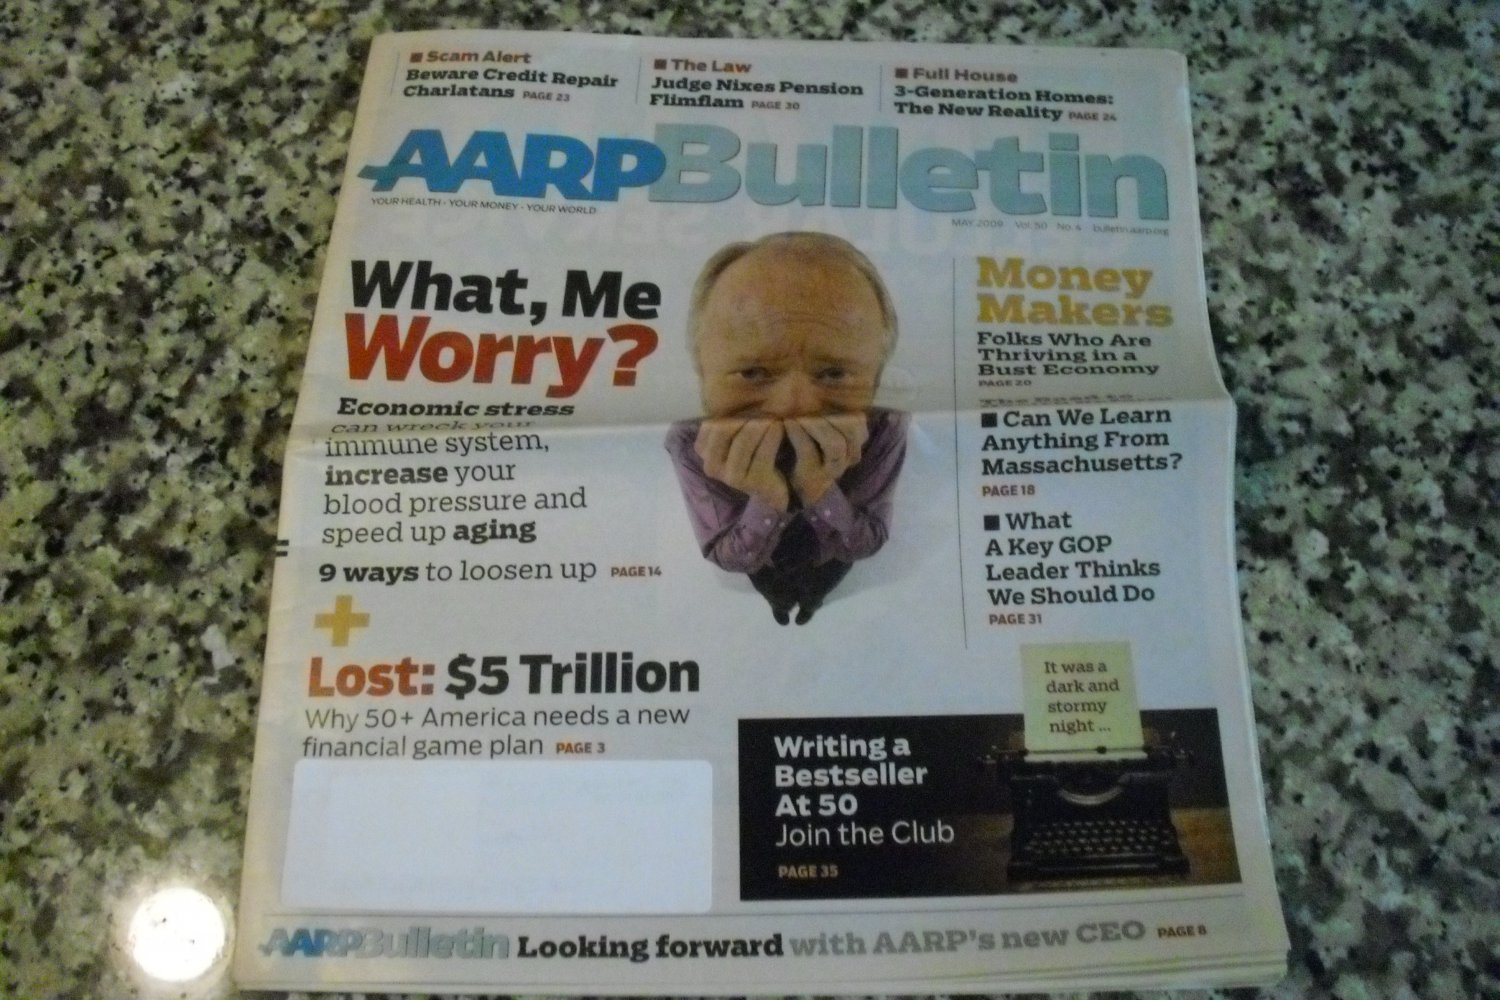 AARP Bulletin May 2009 Vol. 50, No. 4 What, Me Worry?